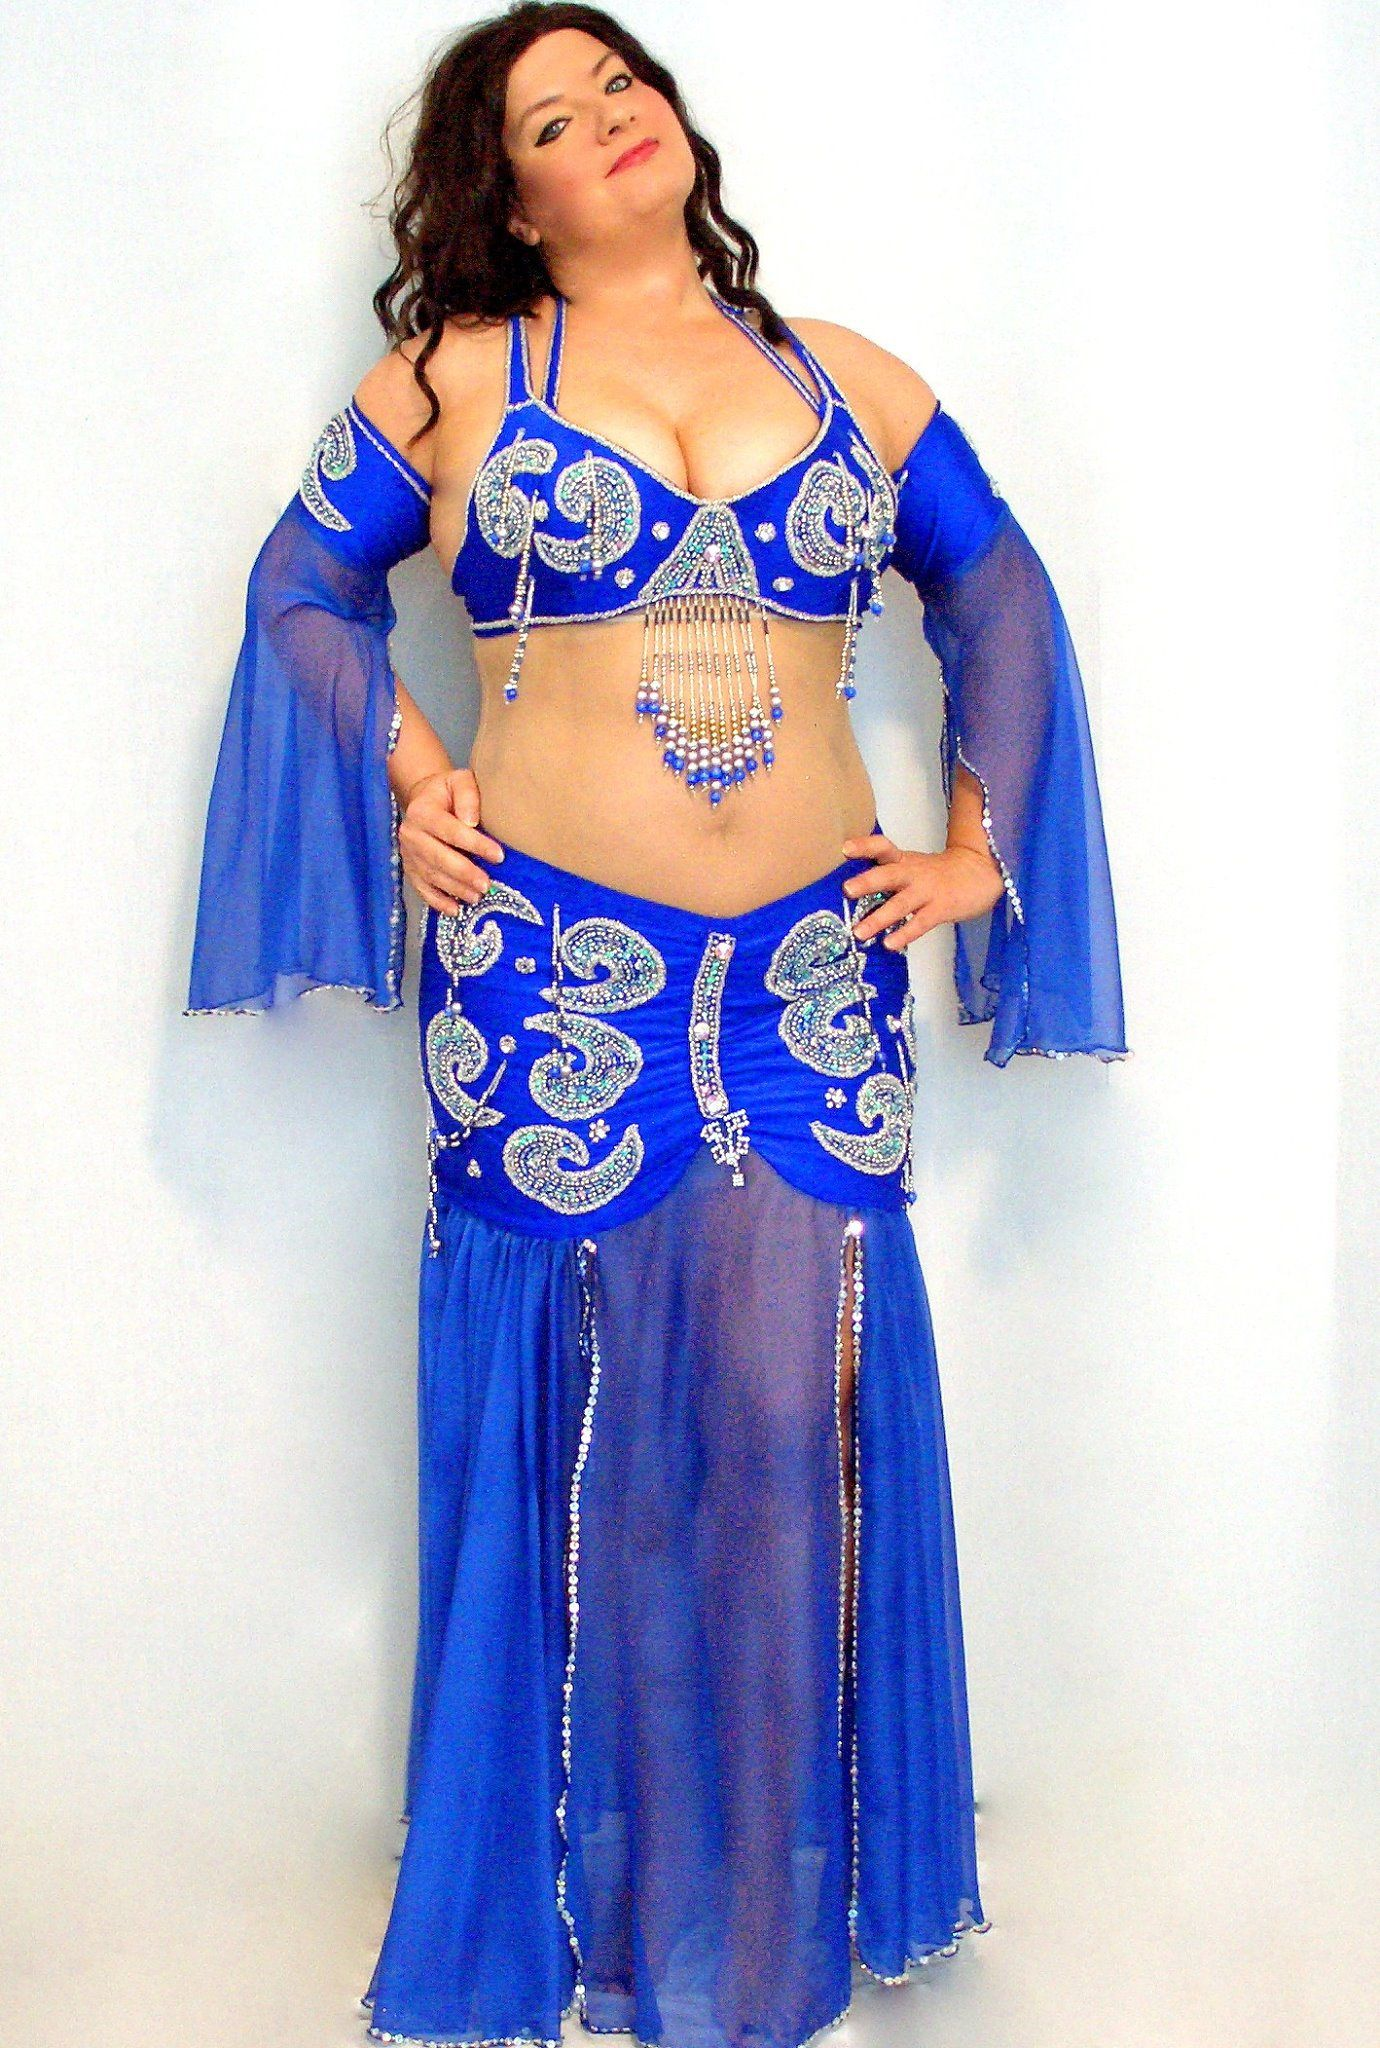 5db7a1edc0cf Excited to share the latest addition to my #etsy shop: Egyptian professional  belly dance